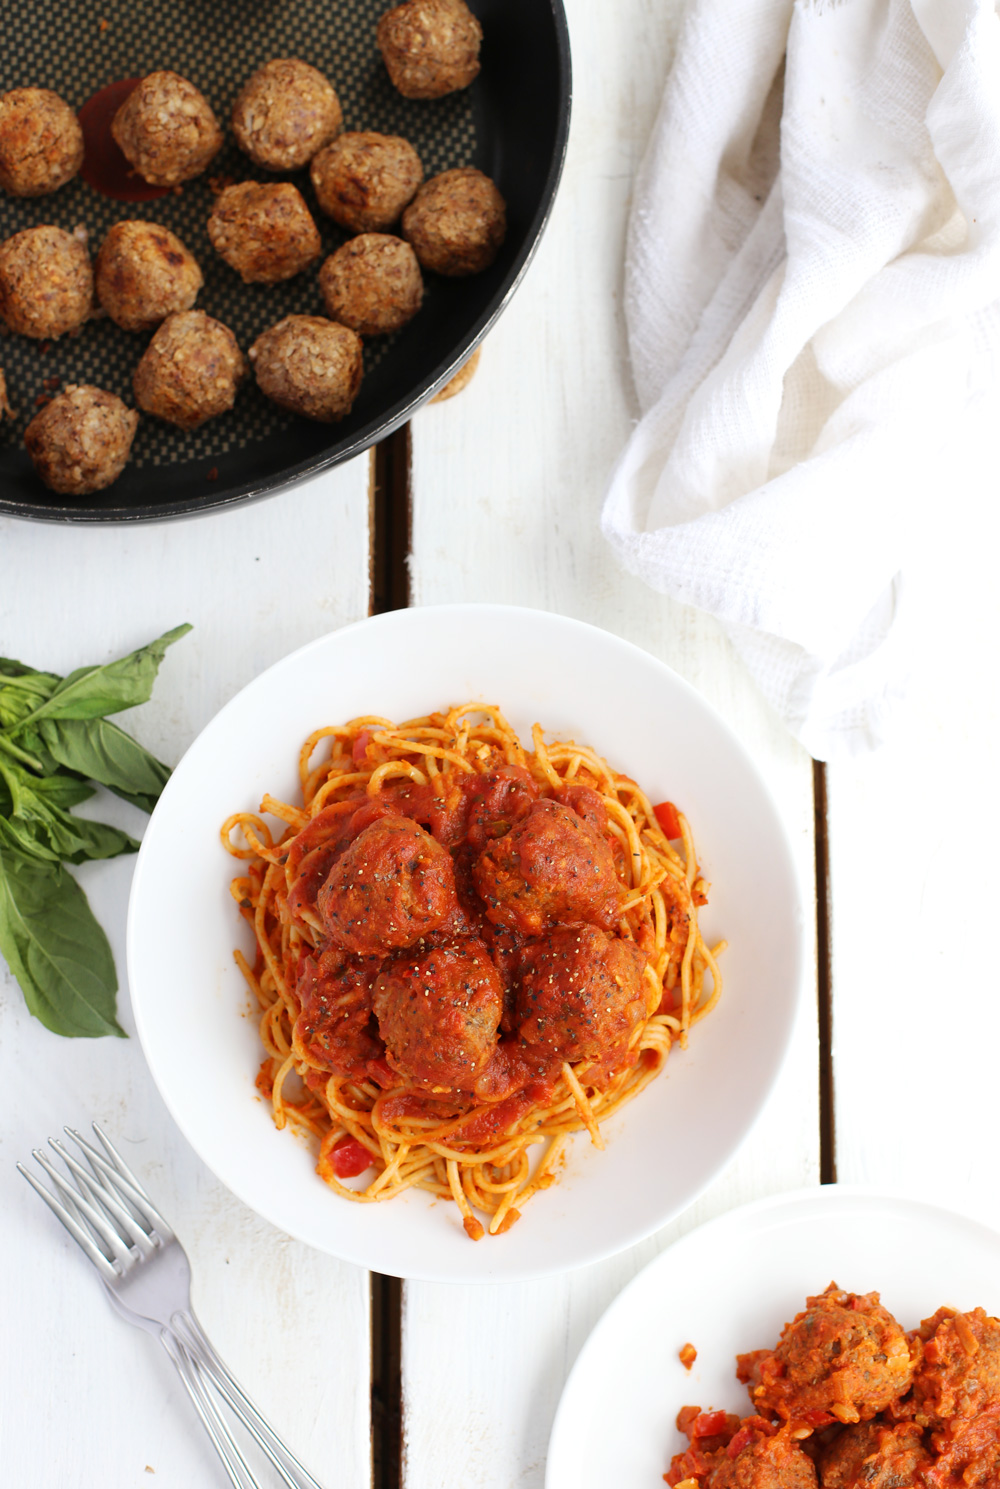 2-Ingredient Vegan Meatballs